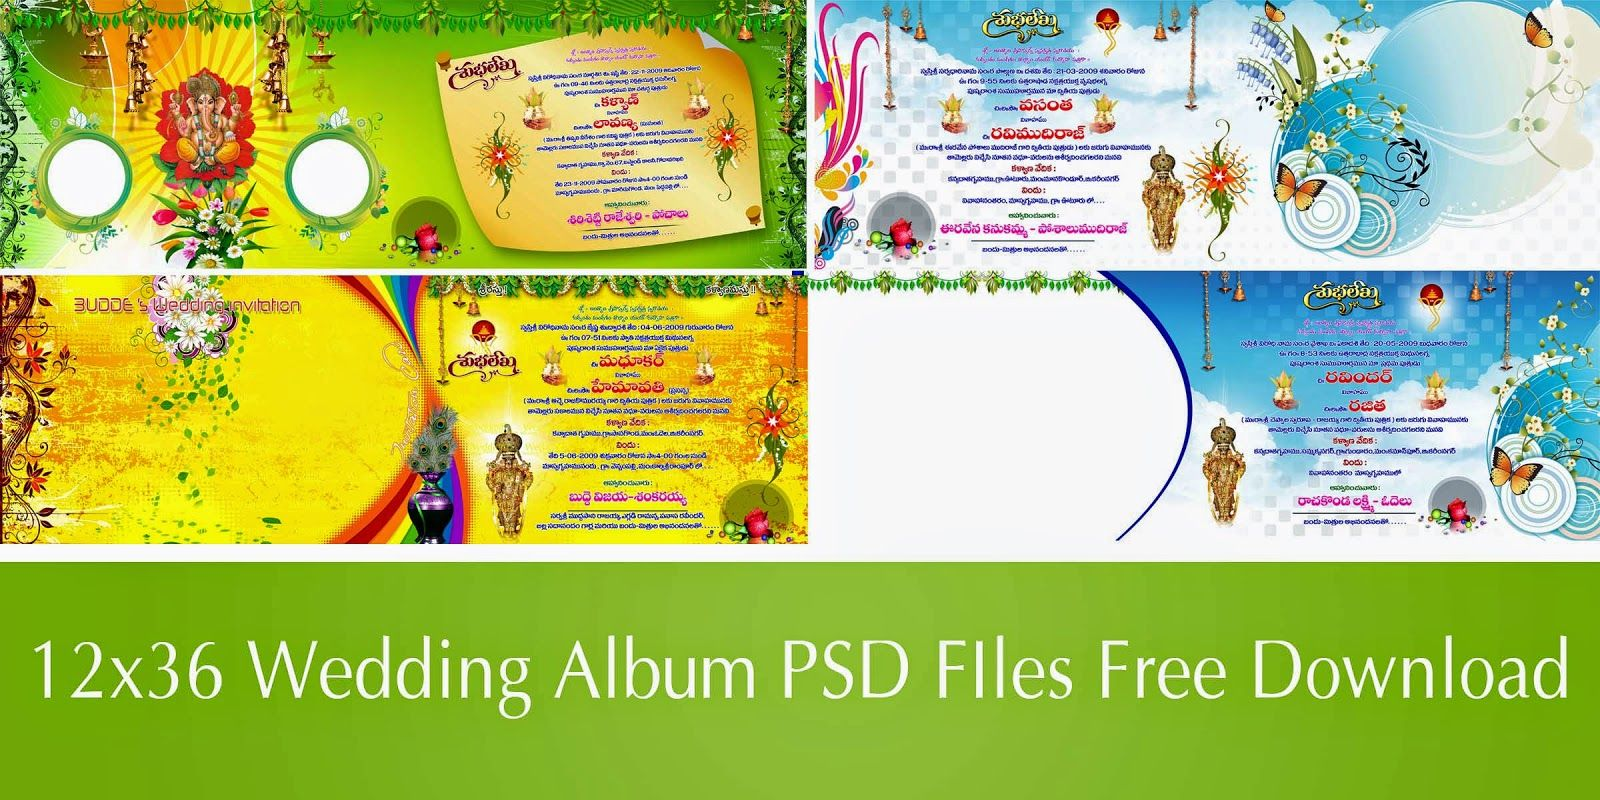 www NaveenGFX com: 12x36 Album PSD Files Free Download | PSD Files